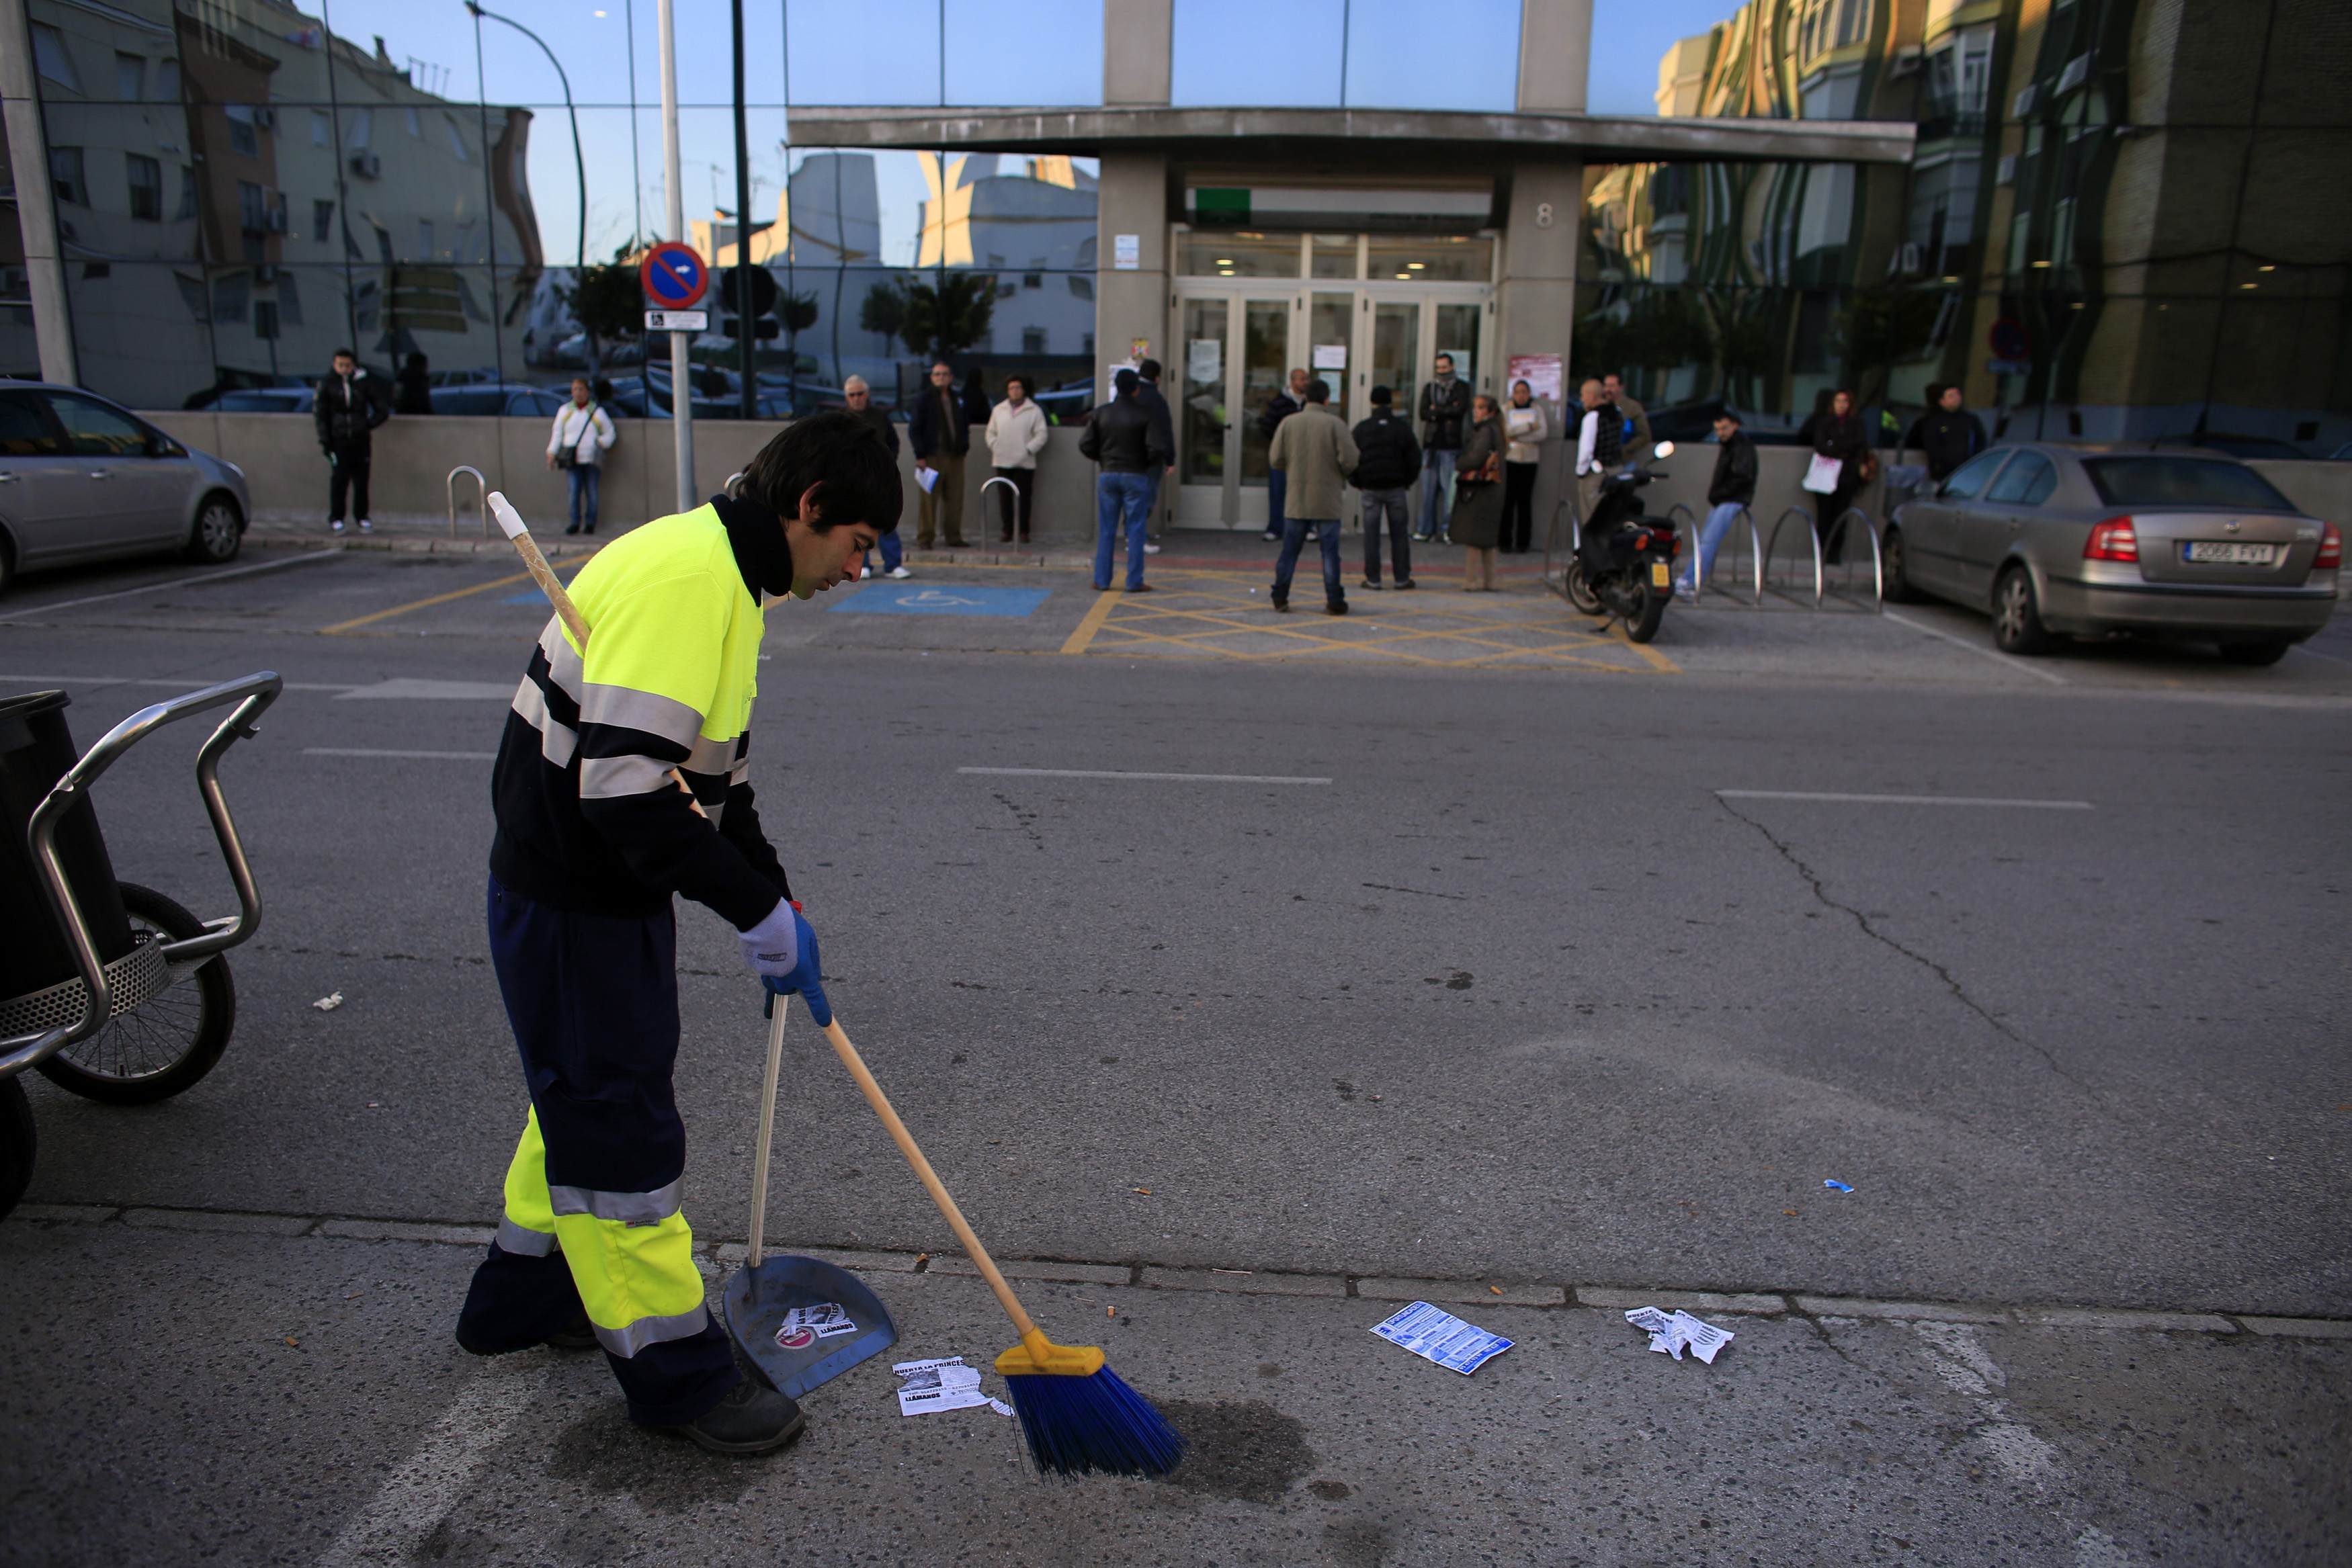 People wait to enter in a government-run employment office as a street cleaner sweeps on a street in Dos Hermanas